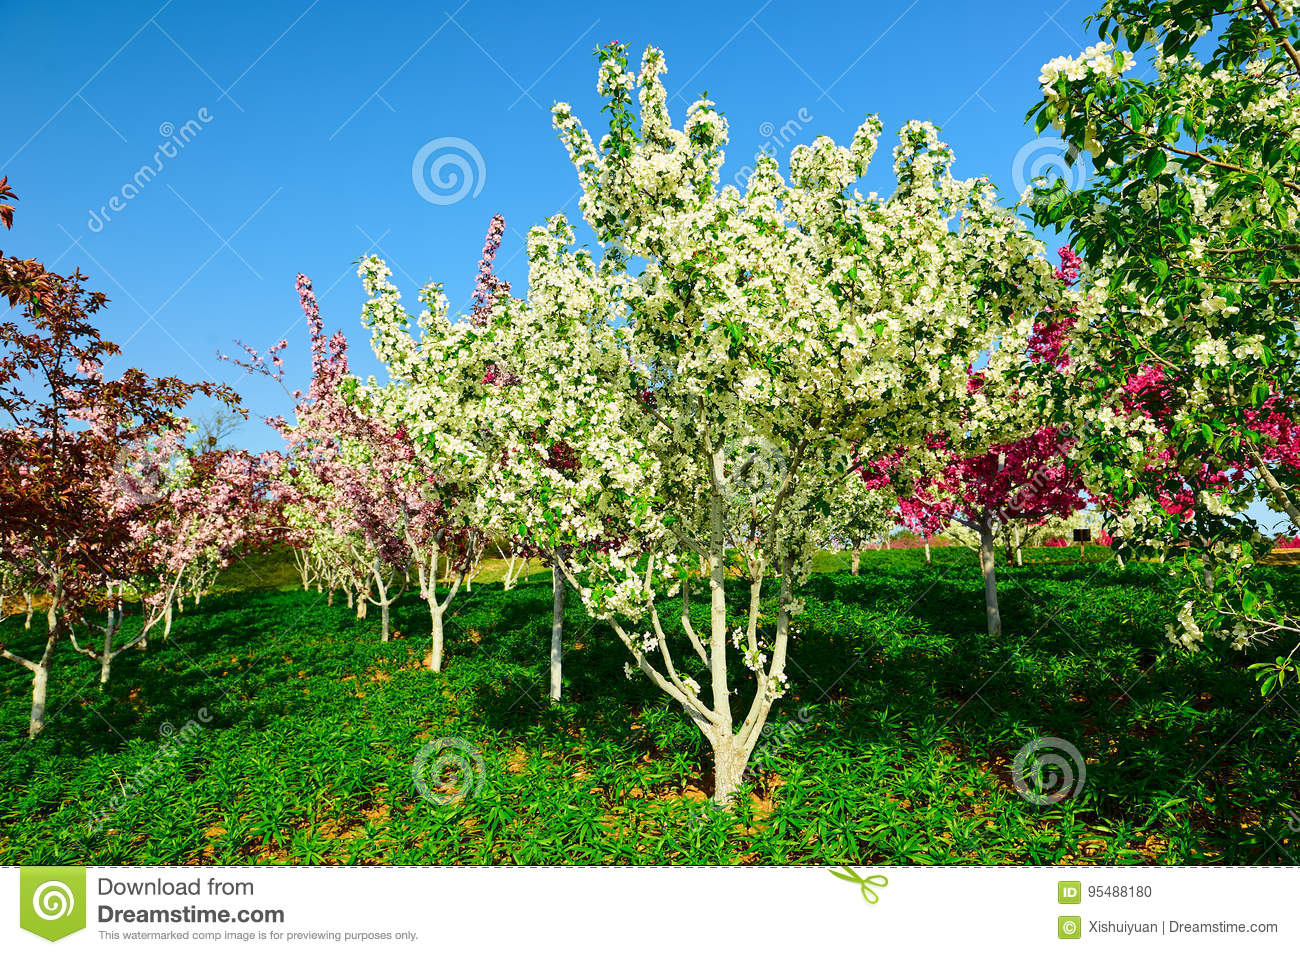 The White Flower Trees Stock Photo Image Of Fields Chinese 95488180